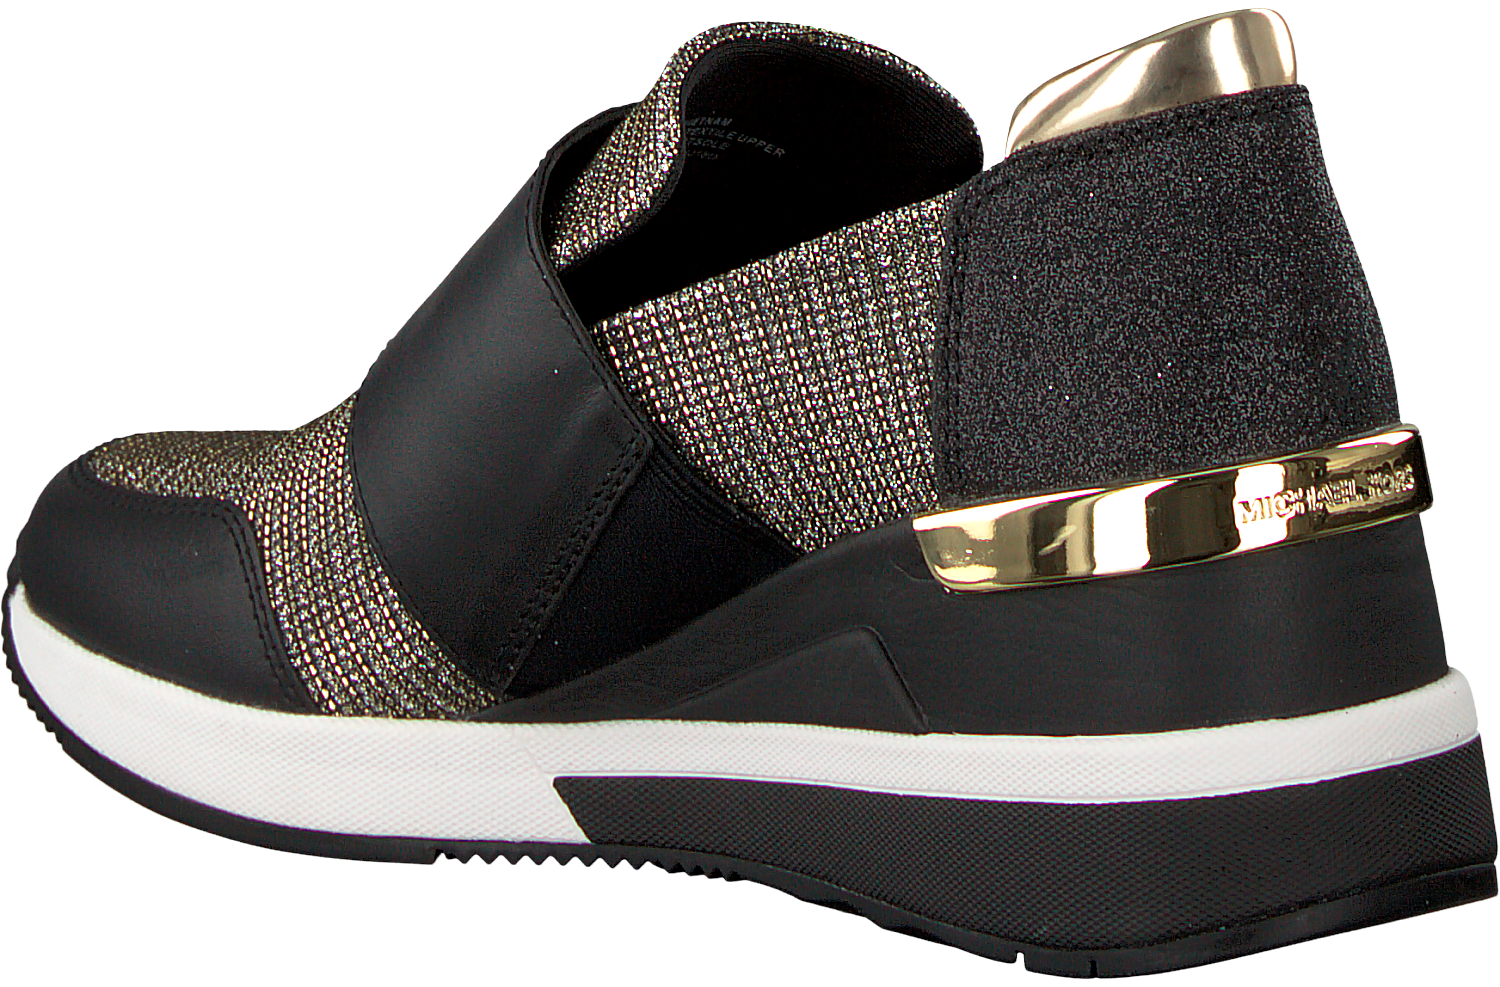 schwarze michael kors sneaker chelsie trainer schuhmode online. Black Bedroom Furniture Sets. Home Design Ideas